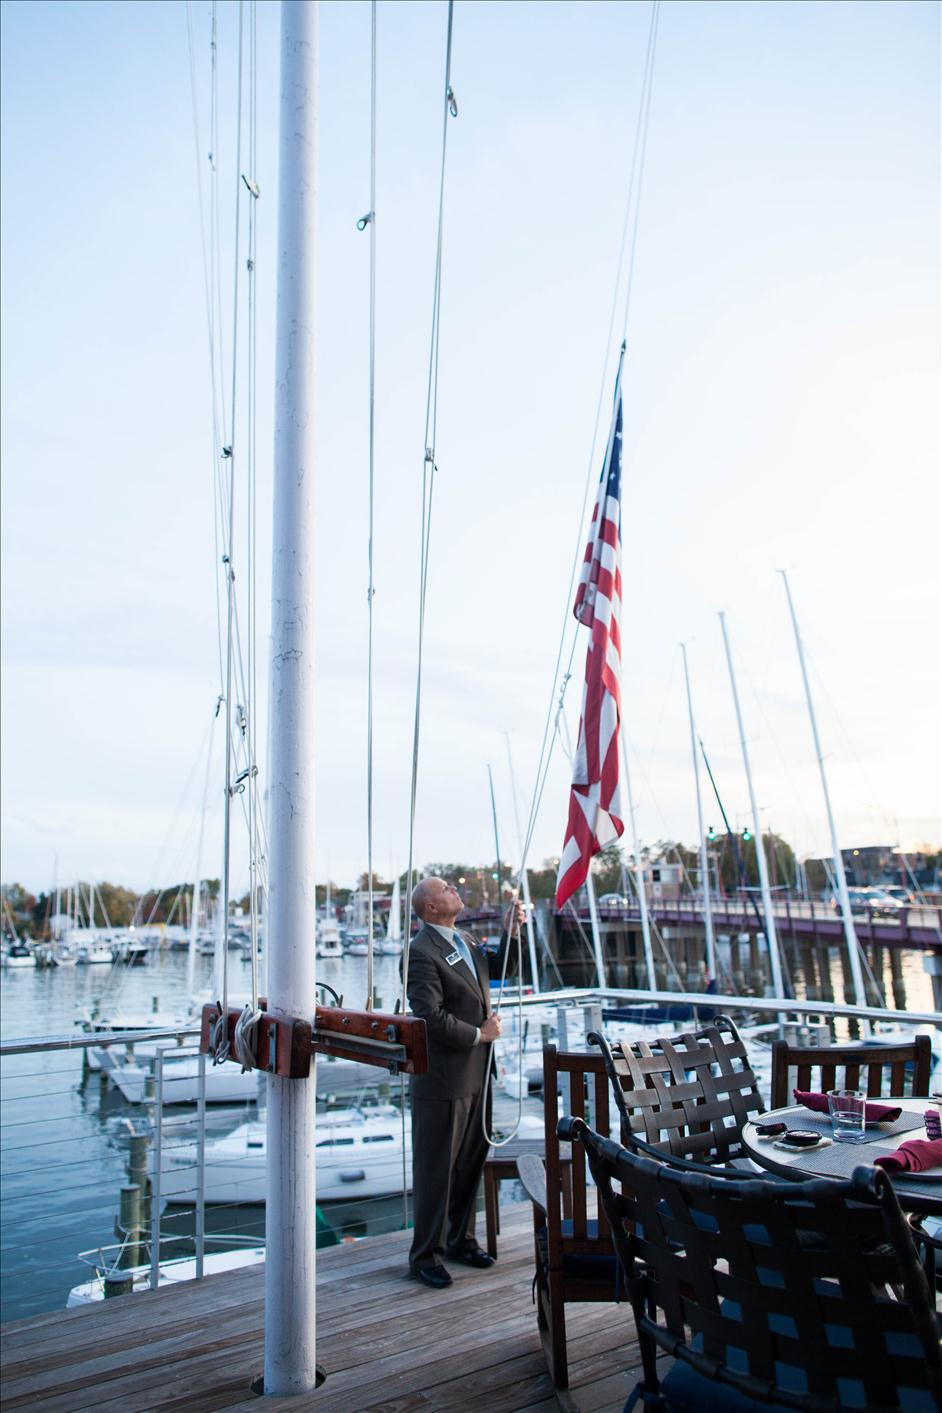 Lowering the flag at sunset at the Annapolis Yacht Club